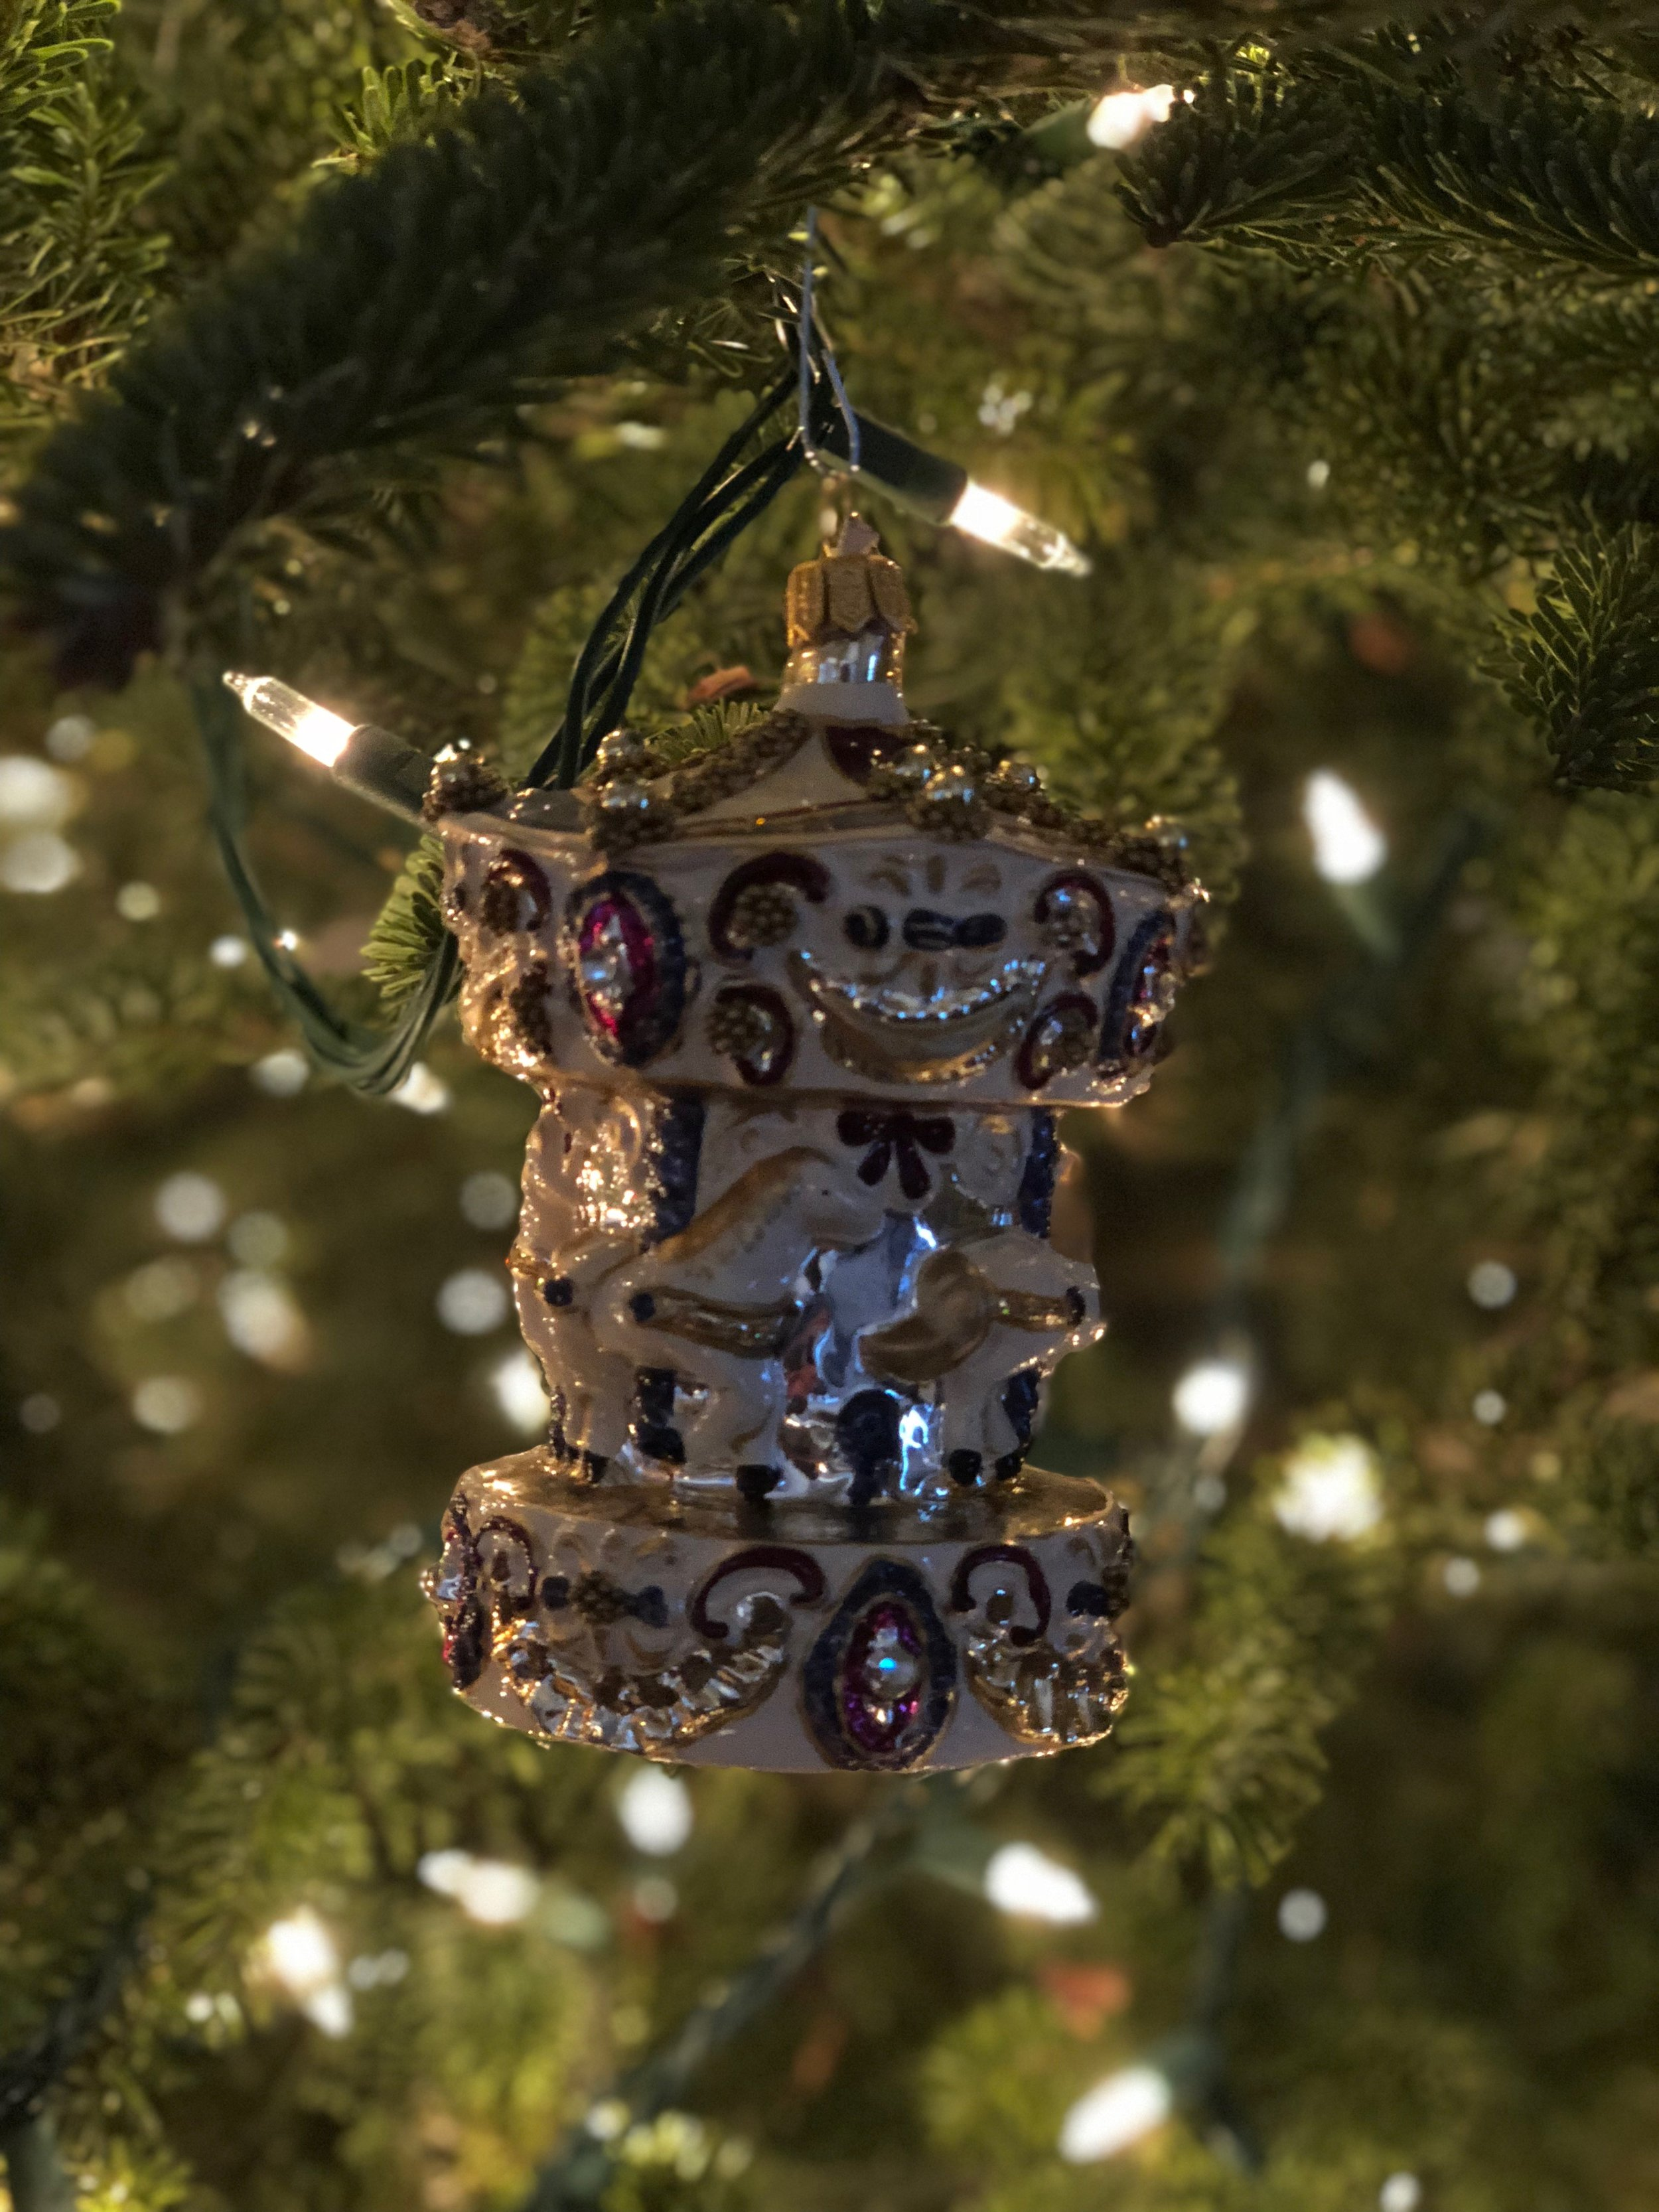 - Momentum's very own Annie Byrne loves Christmas! Her house is decorated in all of the seasons most festive things. Of the many ornaments on her tree, Annie's favorite is this glass carousel.